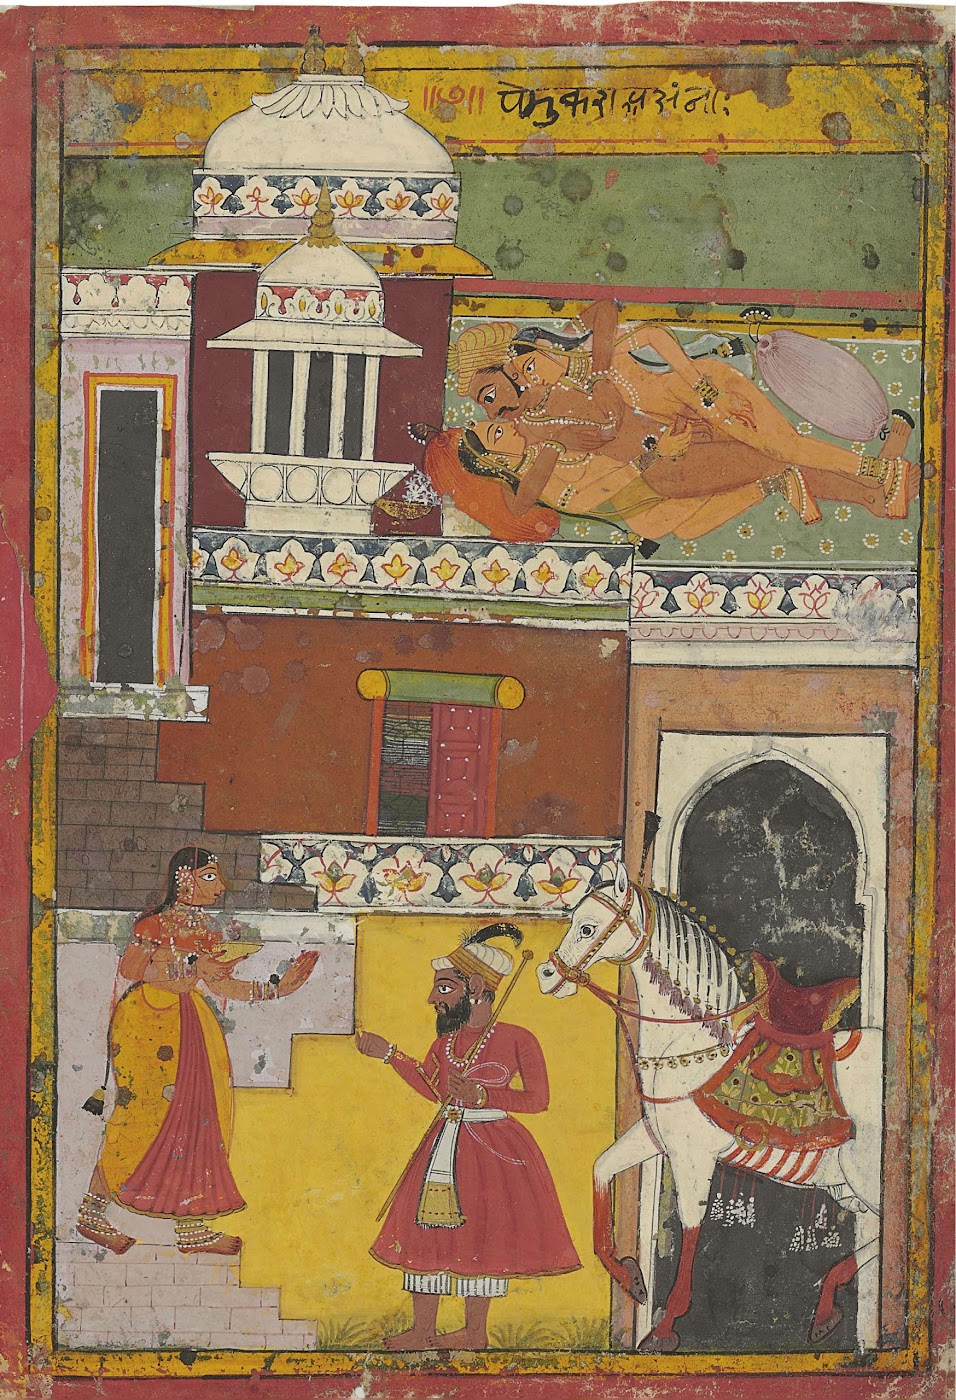 The Unexpected Return of the Husband - Rajput Painting, Sirohi, 17th Century